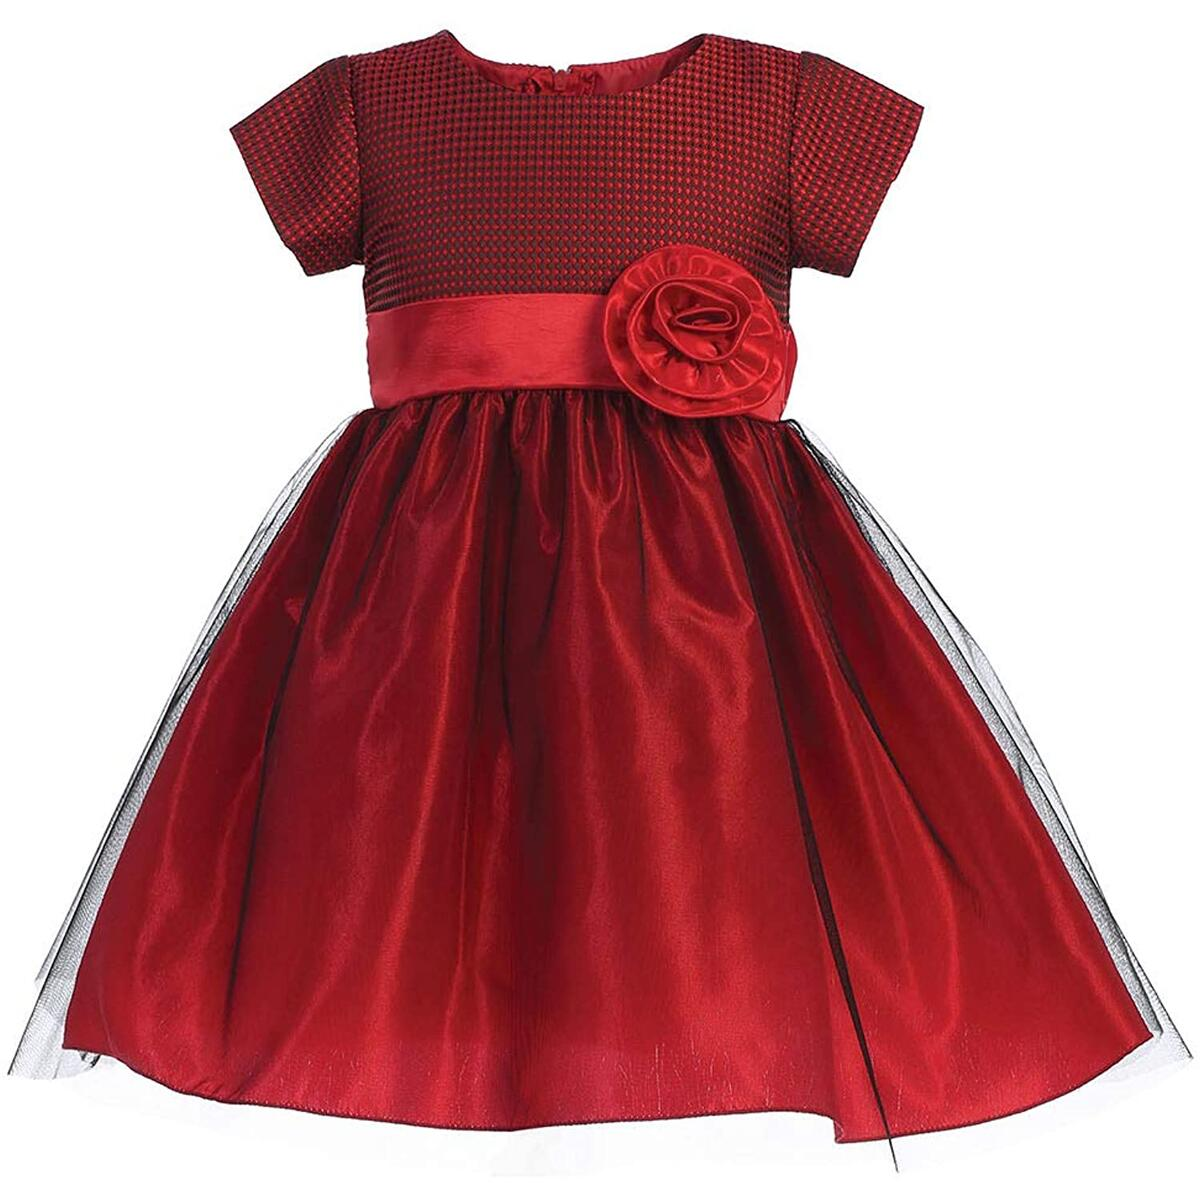 Pink Princess Christmas Dresses for Girls - Red Burgundy Long Sleeve Baby Boy Toddler Outfits - Made in USA